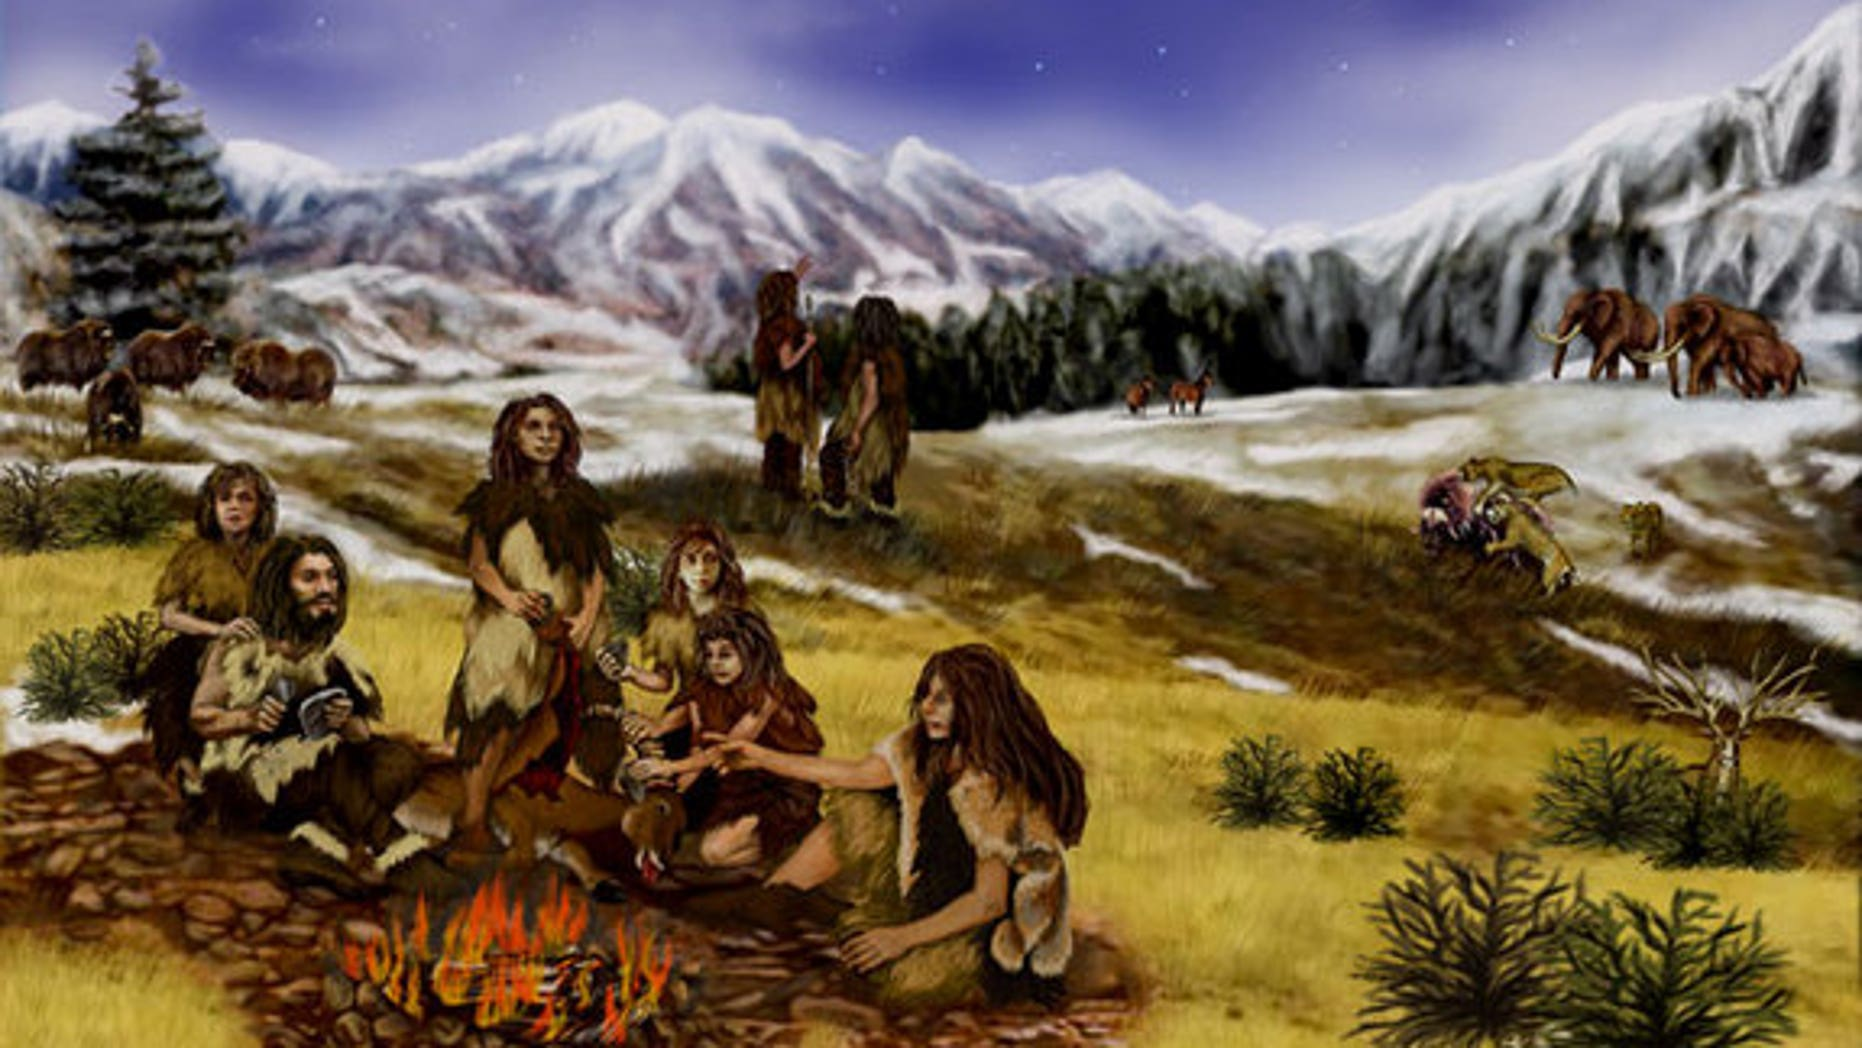 Modern North Africans carry genetic traces from Neanderthals, suggesting their ancestors, too, interbred with humanity's closest known extinct relatives, report scientists online Oct. 17, 2012, in the journal PLoS One.